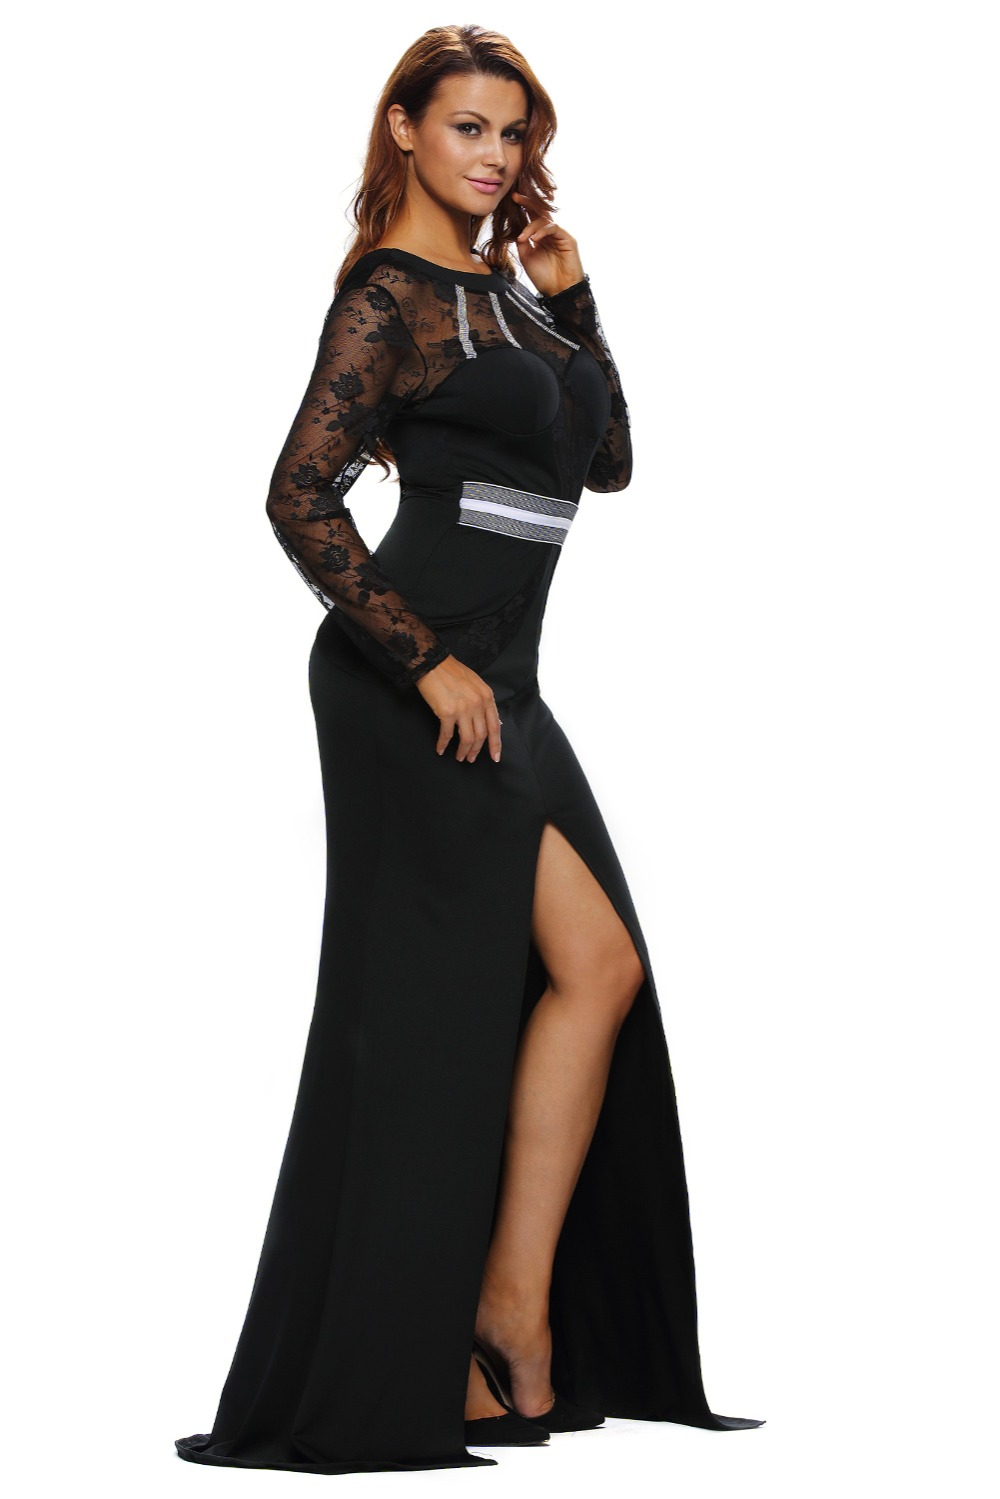 Elegant Black Evening Gowns | Dress images